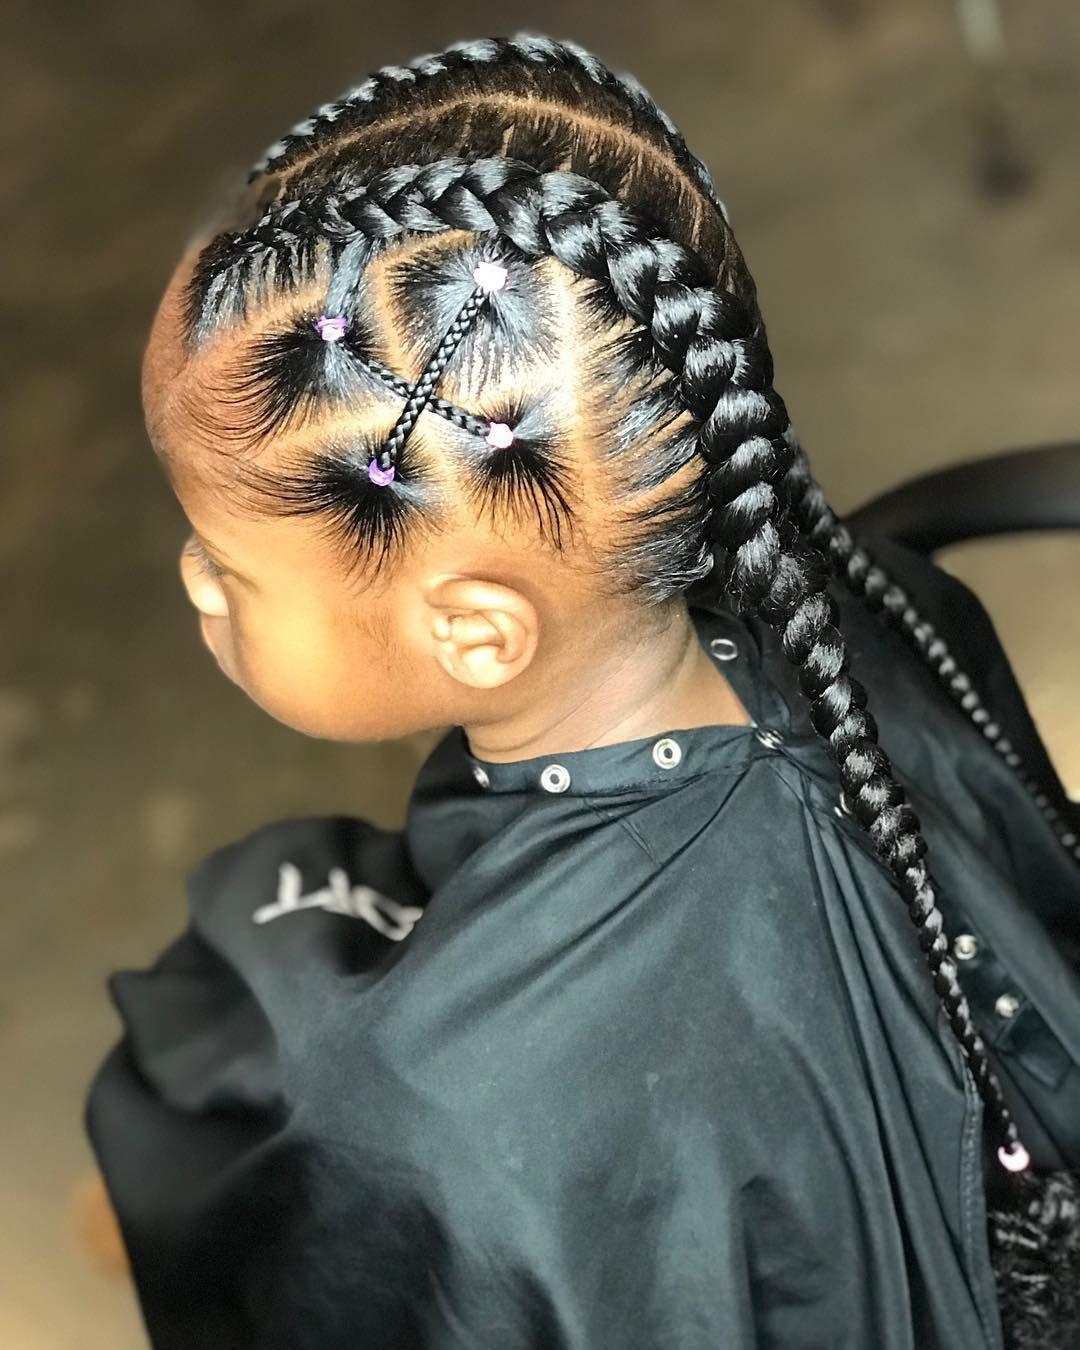 Book Miss Vicky The Loc Loft Stl Vickysbraids Getchusum Feedinbrai Kids Braided Hairstyles Kids Hairstyles Girls Natural Hairstyles